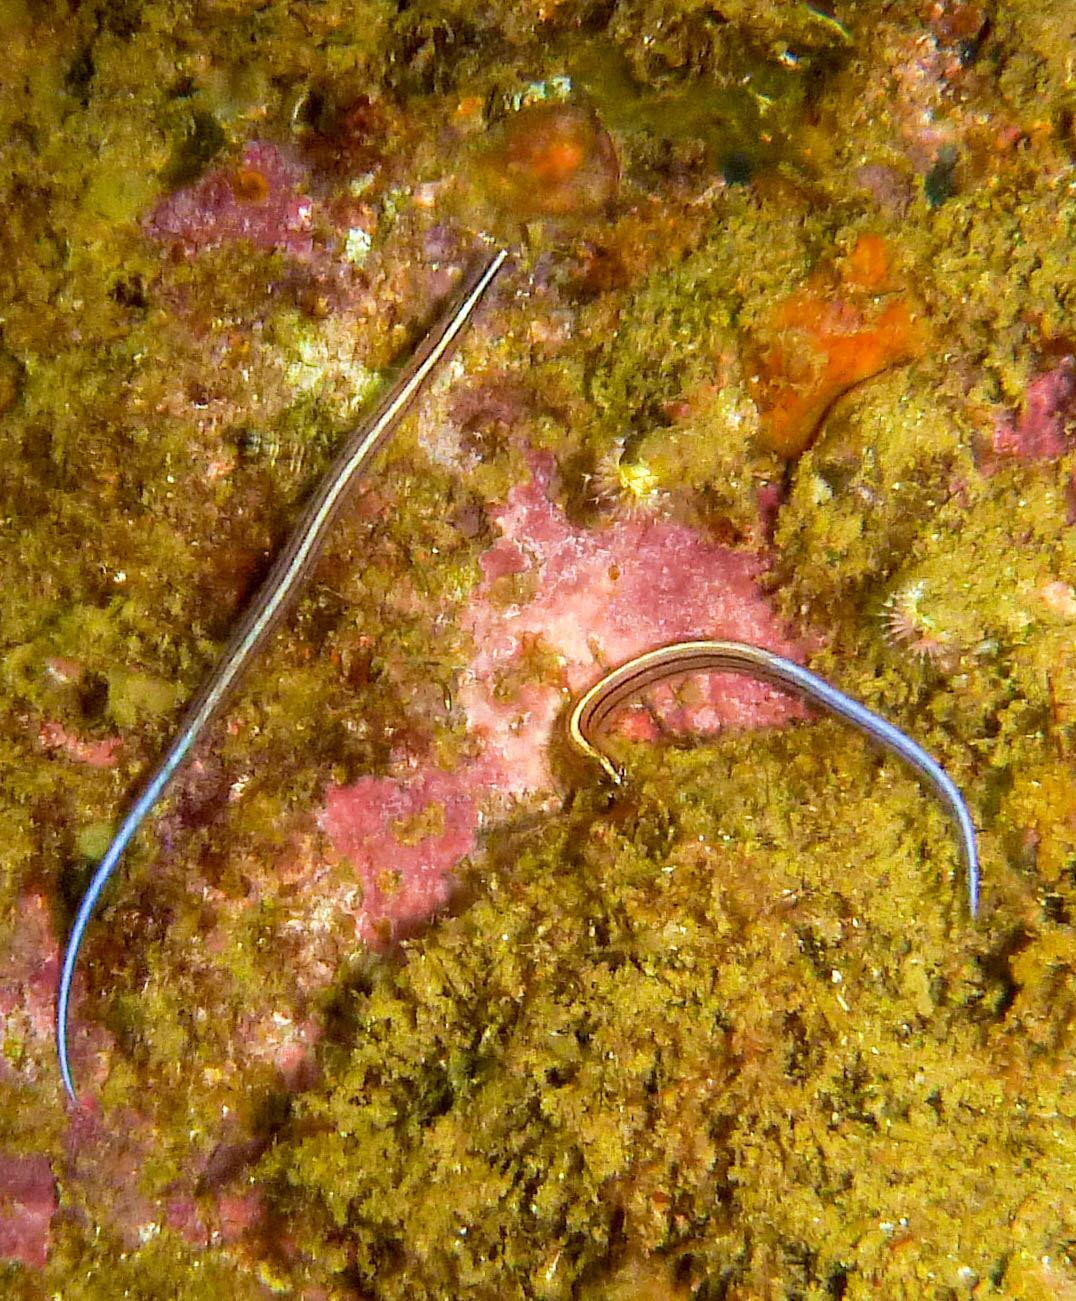 Sawtooth pipefish